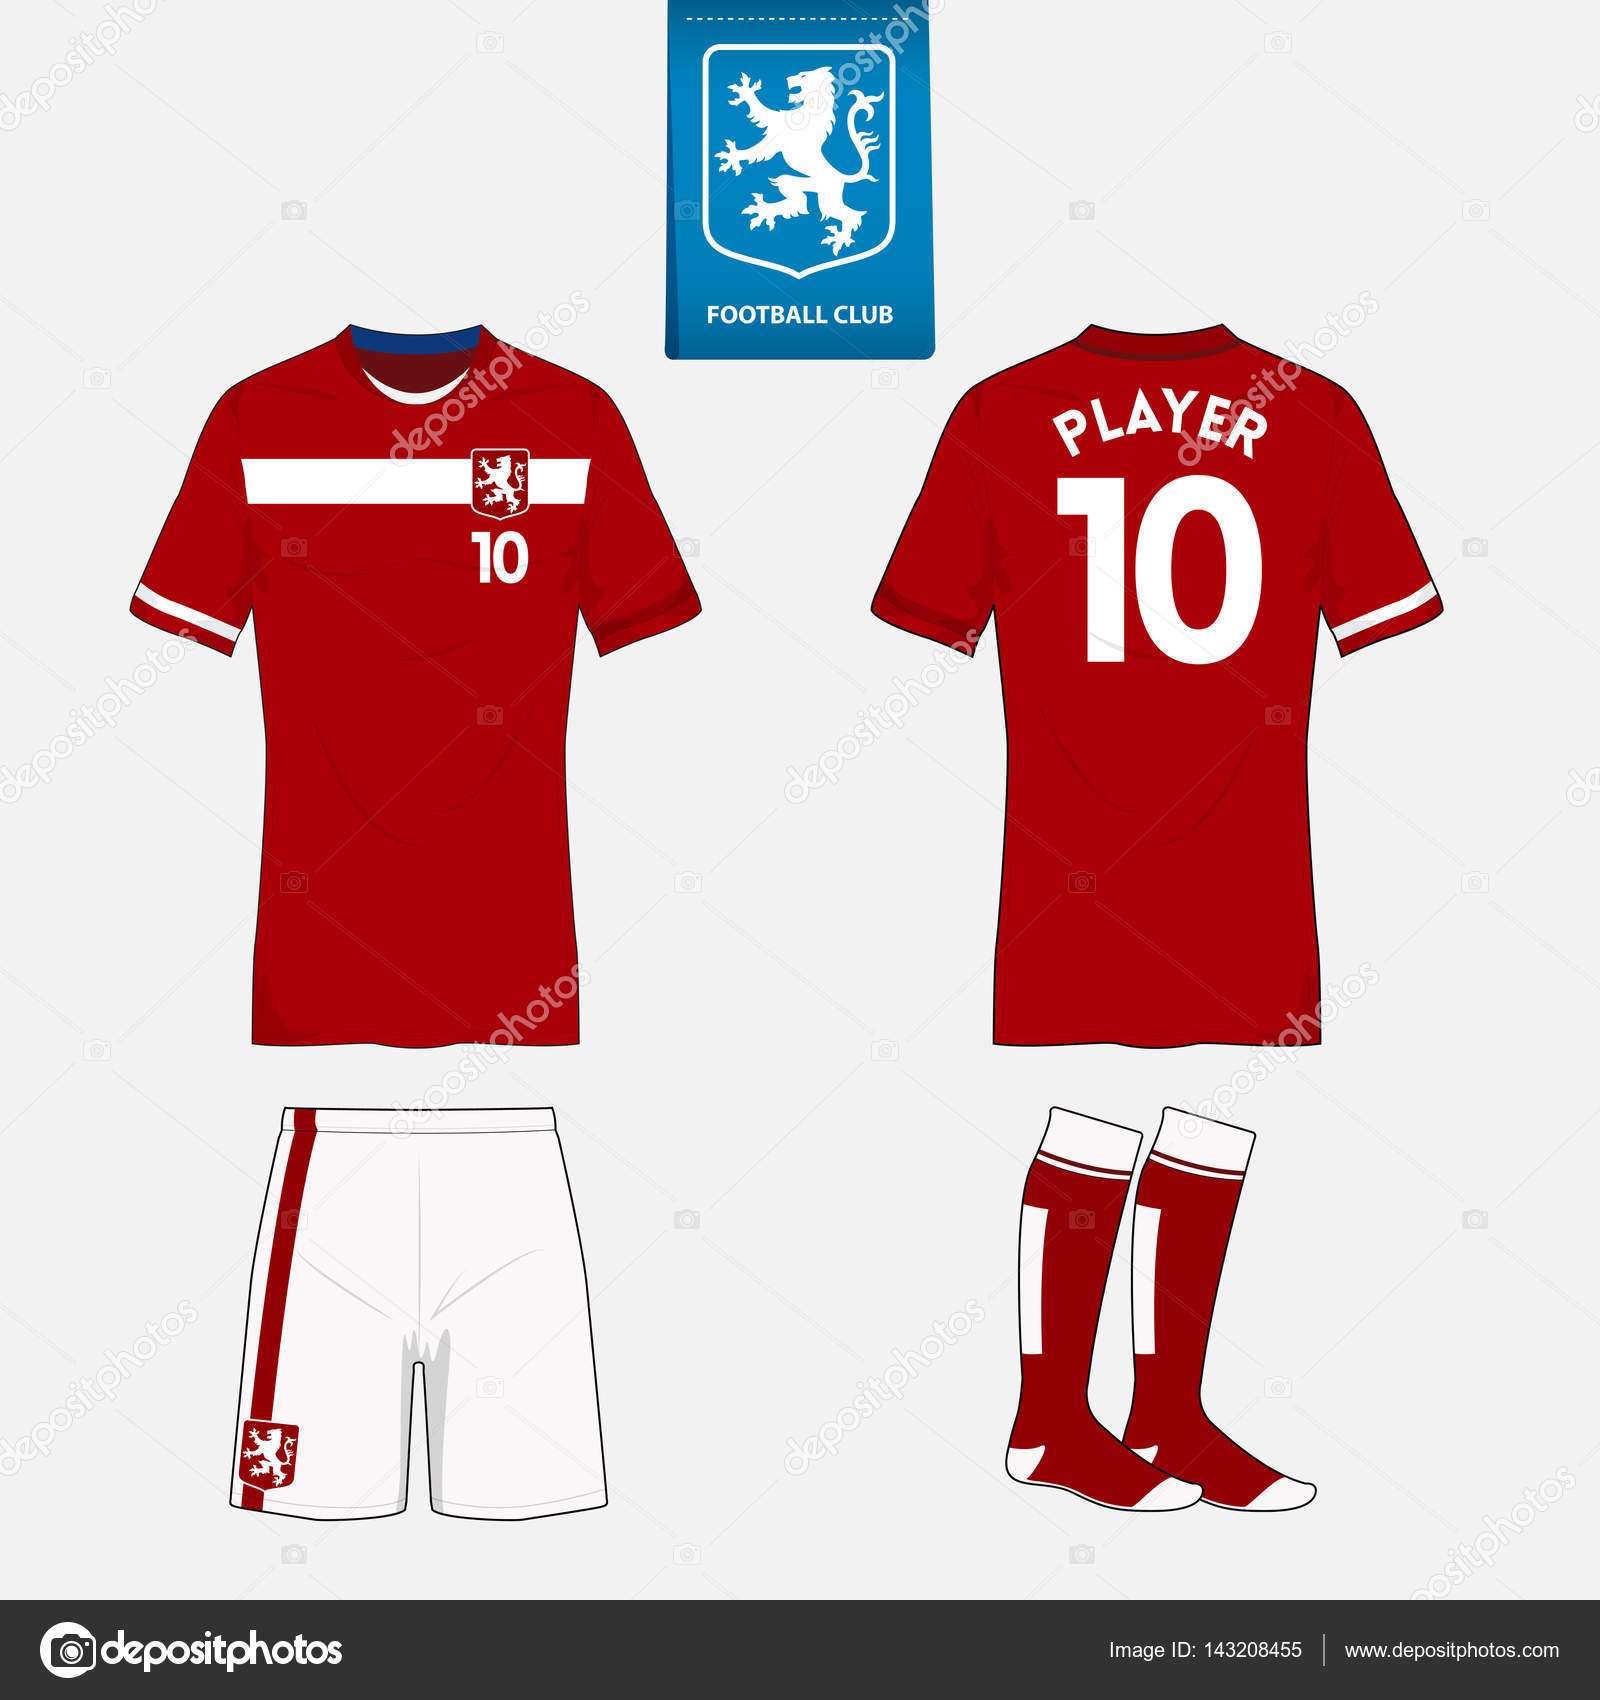 Set of soccer kit or football jersey template for football club. Flat  football logo on blue label. Front and back view soccer uniform. 4ee94478b